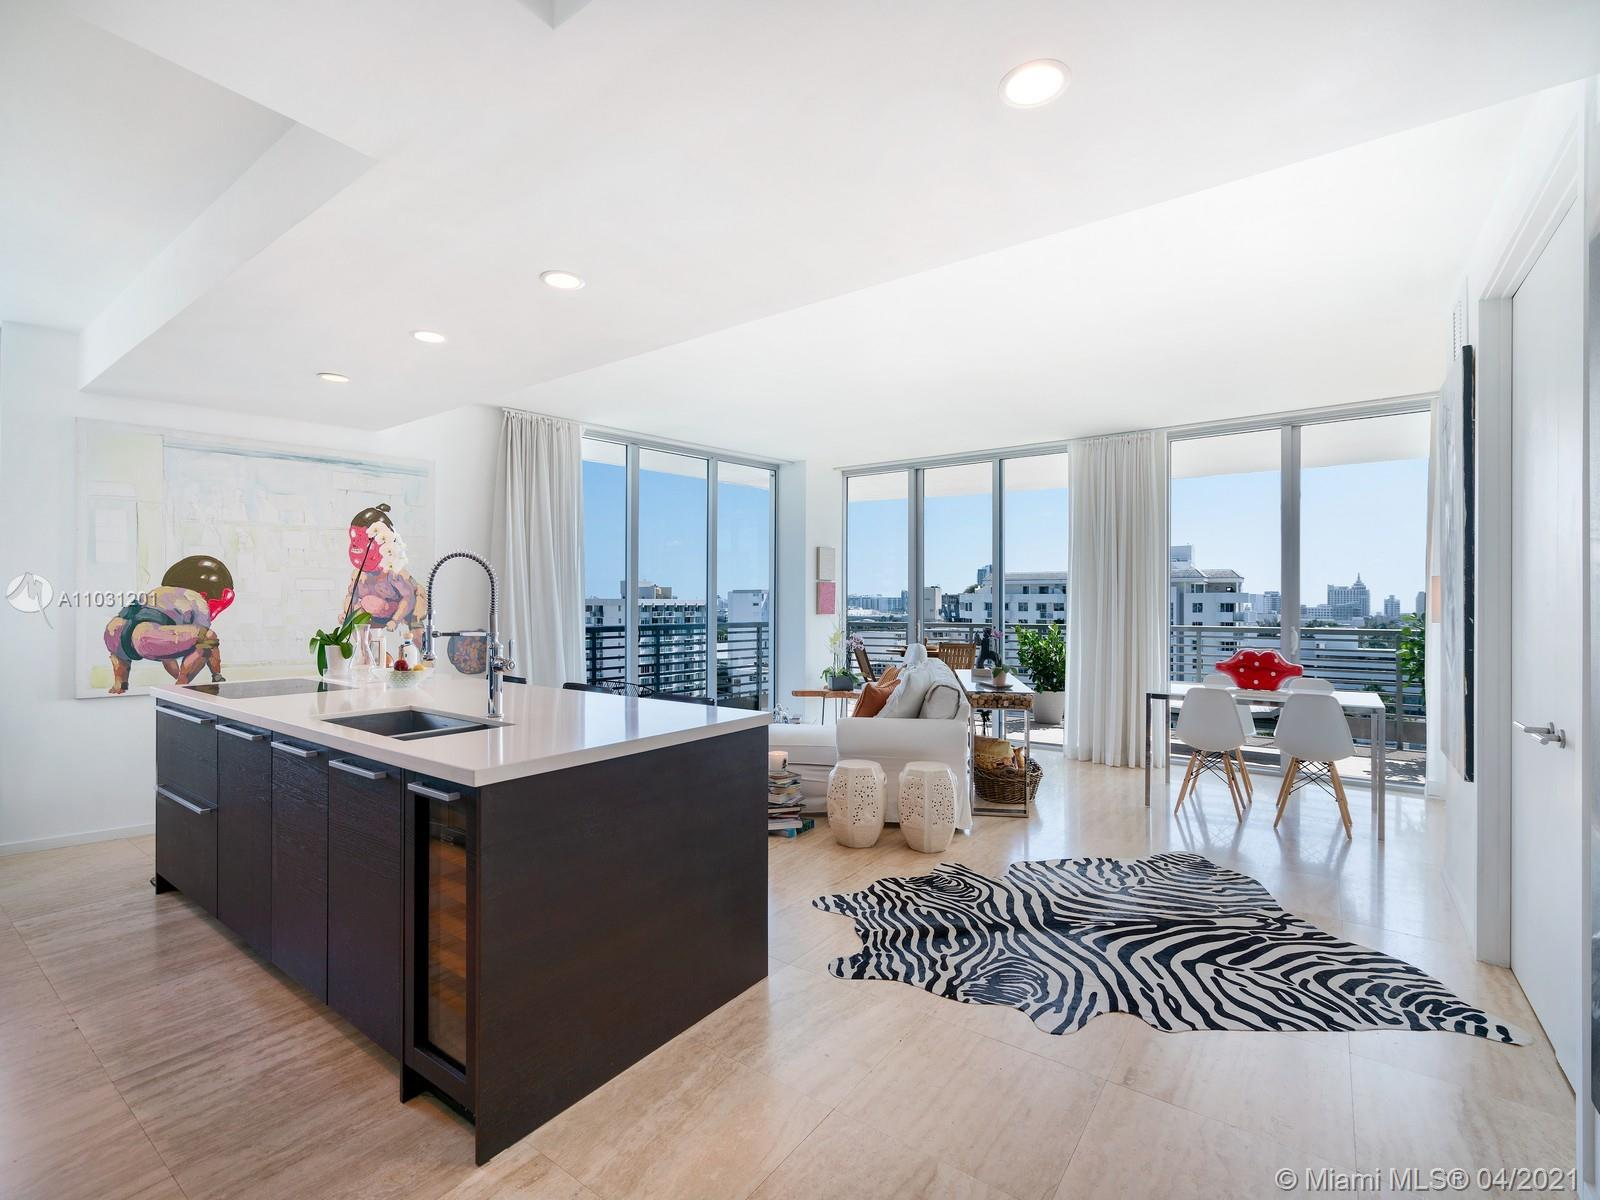 Luxury 2 bedrooms 2.5 bathrooms, living with views from the ocean to the bay. Panoramic Miami Beach Skyline sights throughout.  Floor to ceiling windows, fine flooring and custom closets systems.   Located in Capri South Beach, a boutique luxury condominium with only 69 residences. Offers private marina, Fitness center, pool, jacuzzi, valet and security. Steps from Lincoln Road , Sunset Harbour, gyms, shops and restaurants.